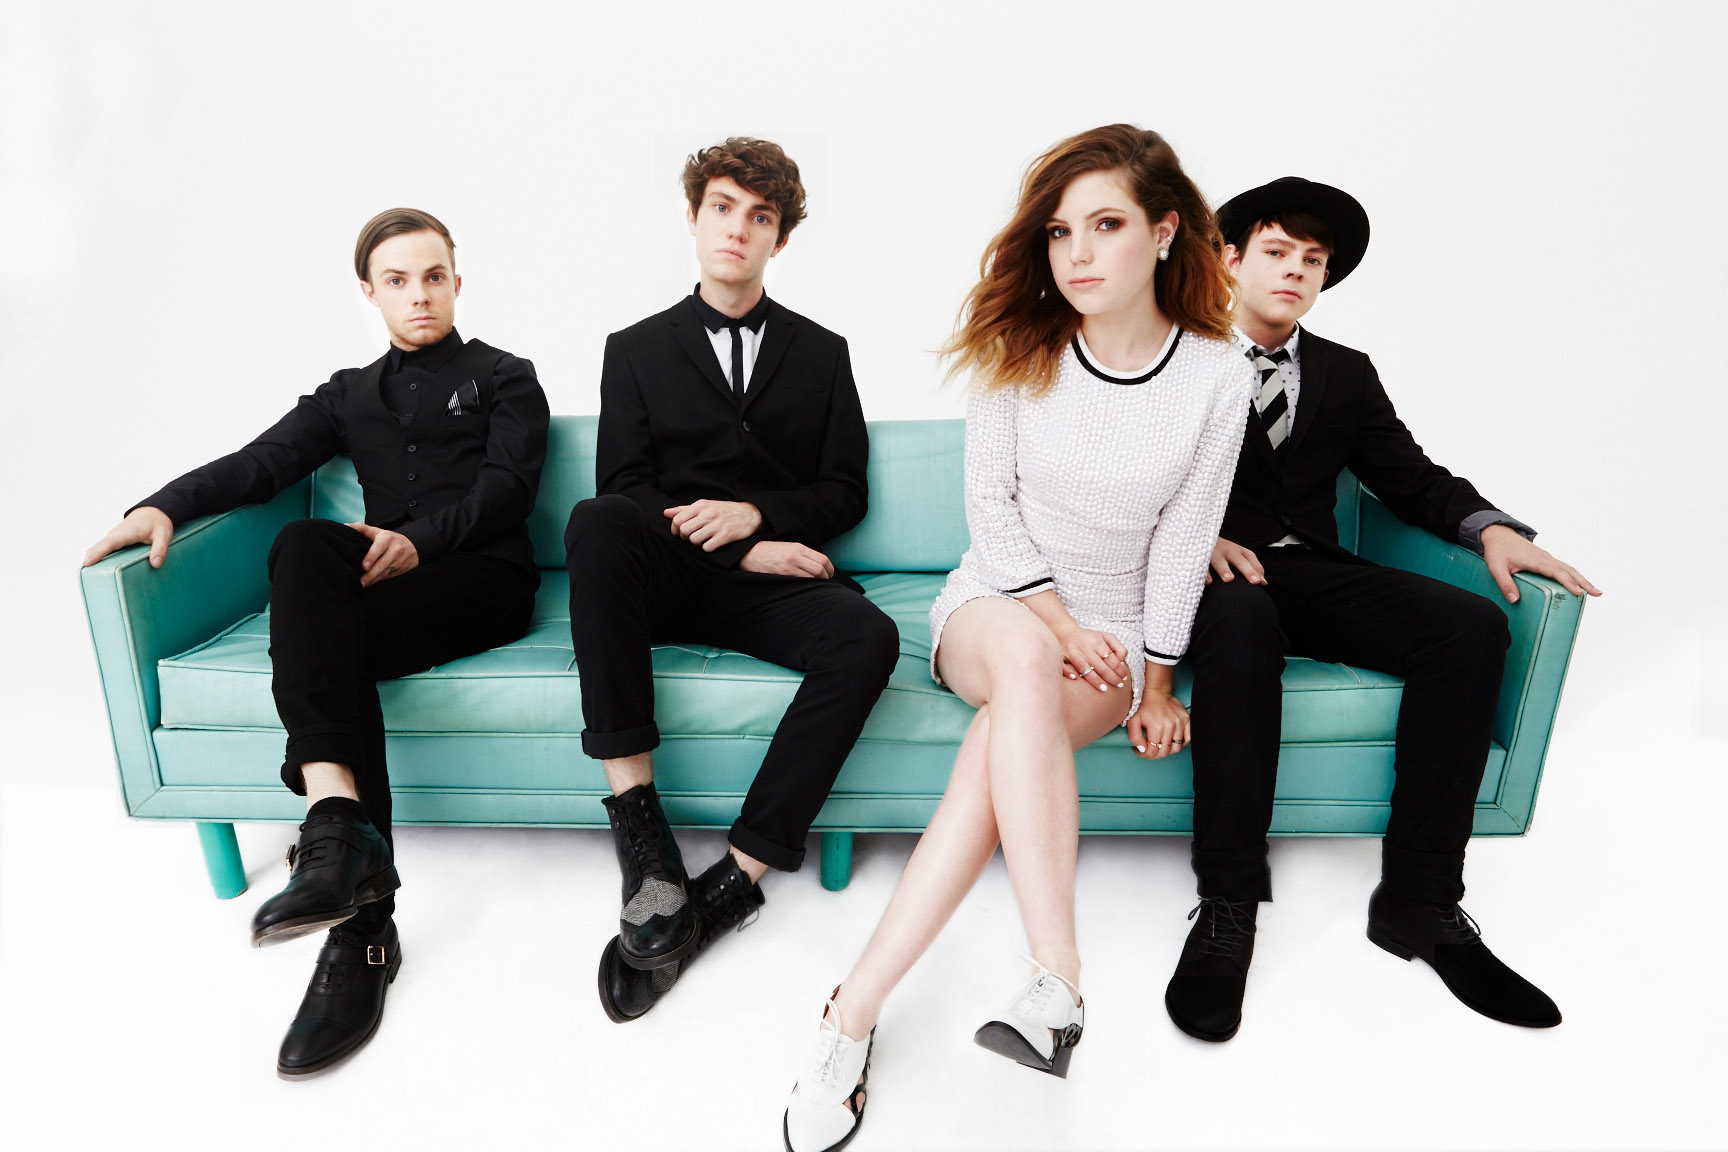 One pair of tickets to see: Echosmith